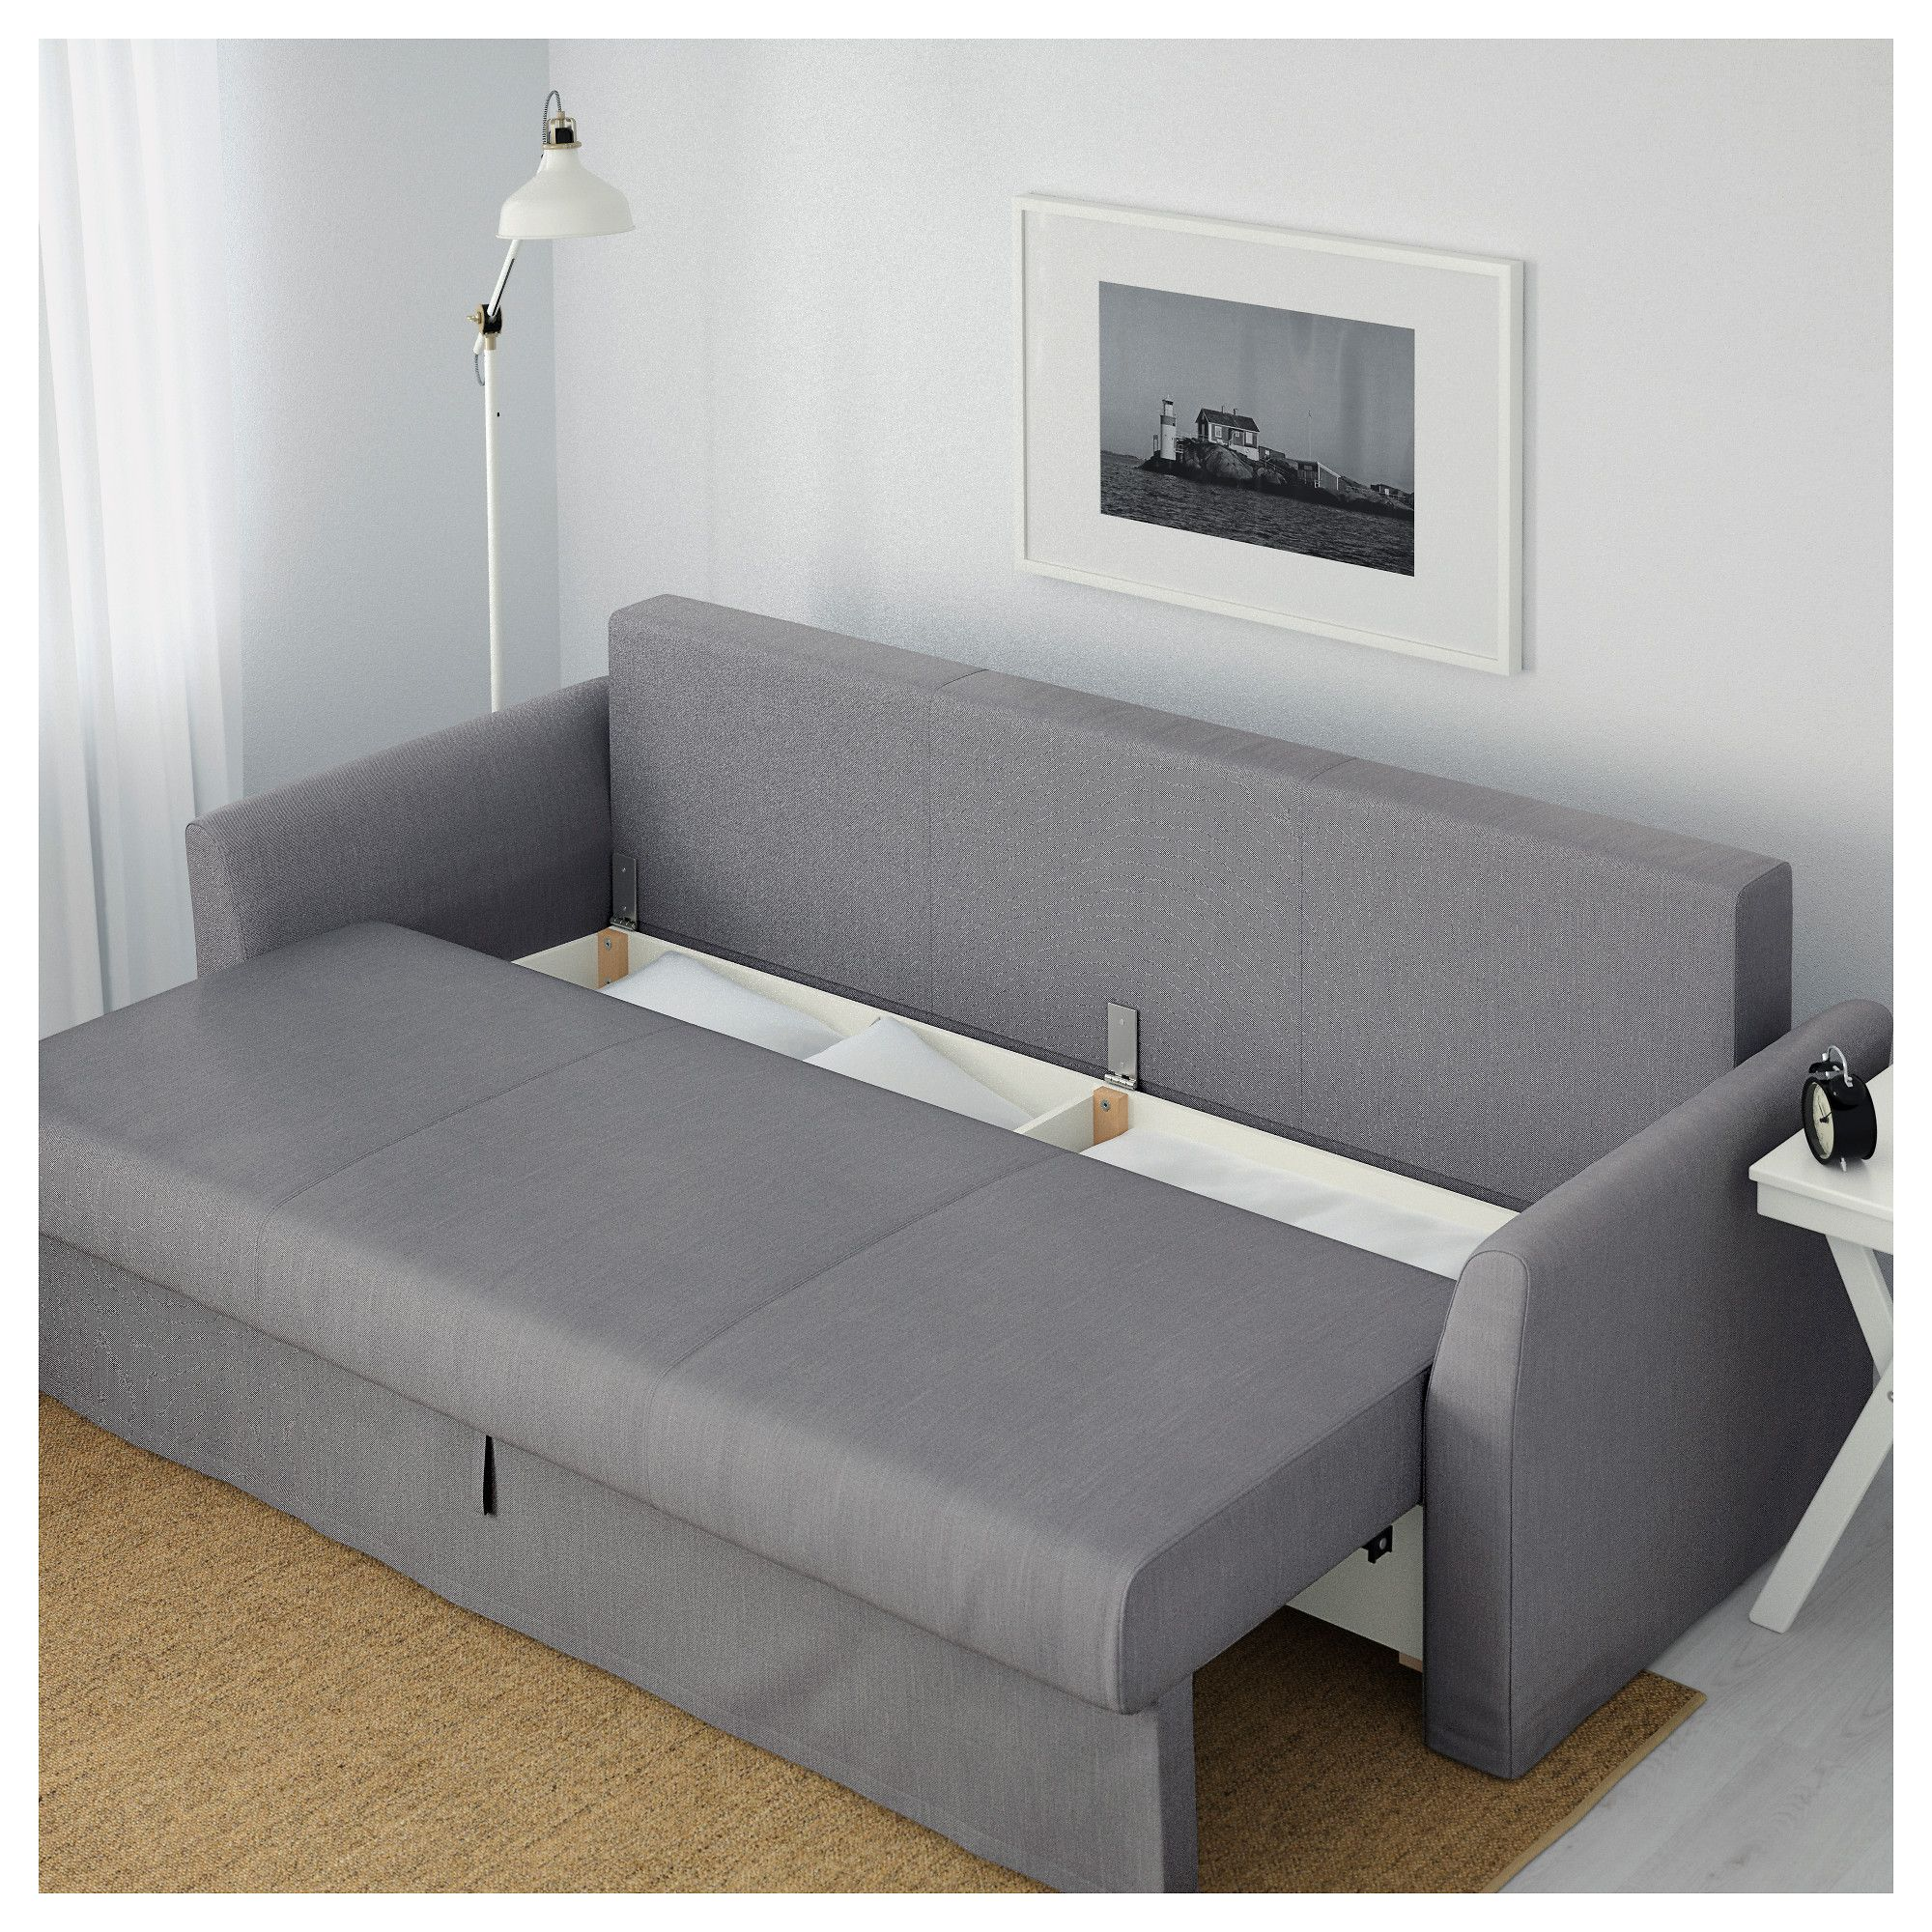 ikea holmsund sofa bed nordvalla medium gray sofa pinterest sofa sleeper sofa and sofa bed. Black Bedroom Furniture Sets. Home Design Ideas